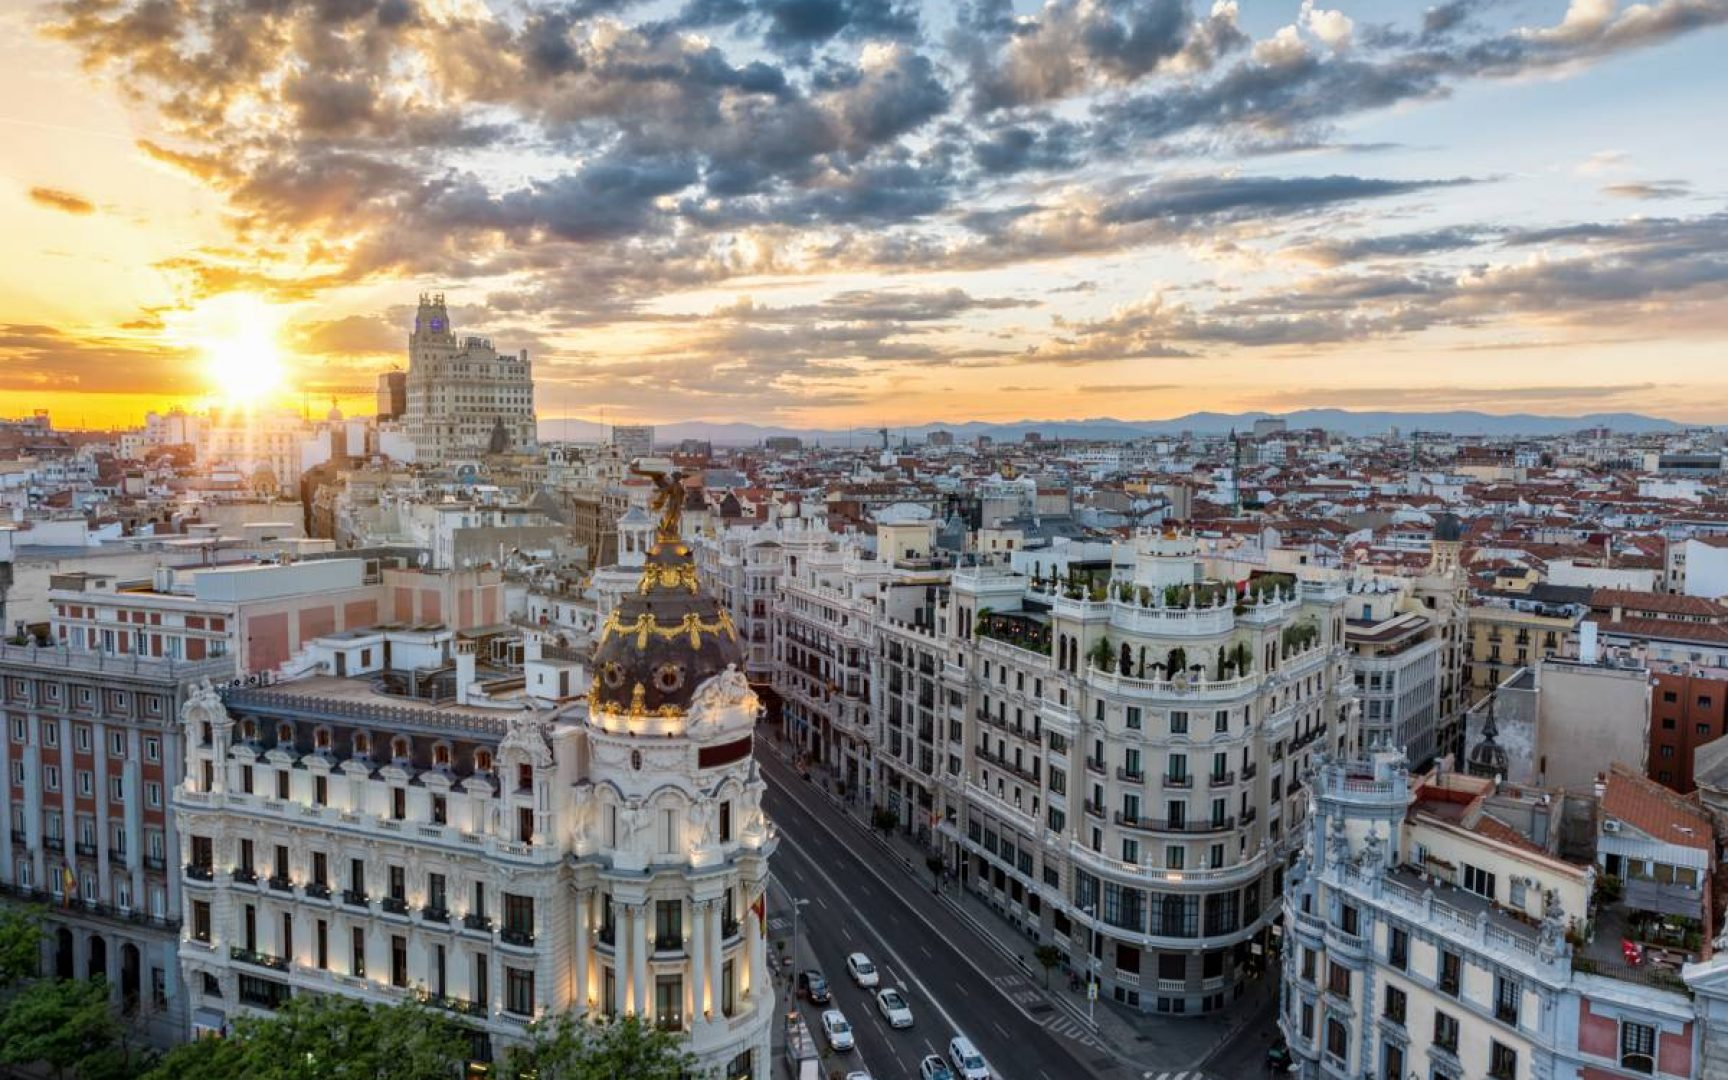 Madrid skyline with the sun setting in the background